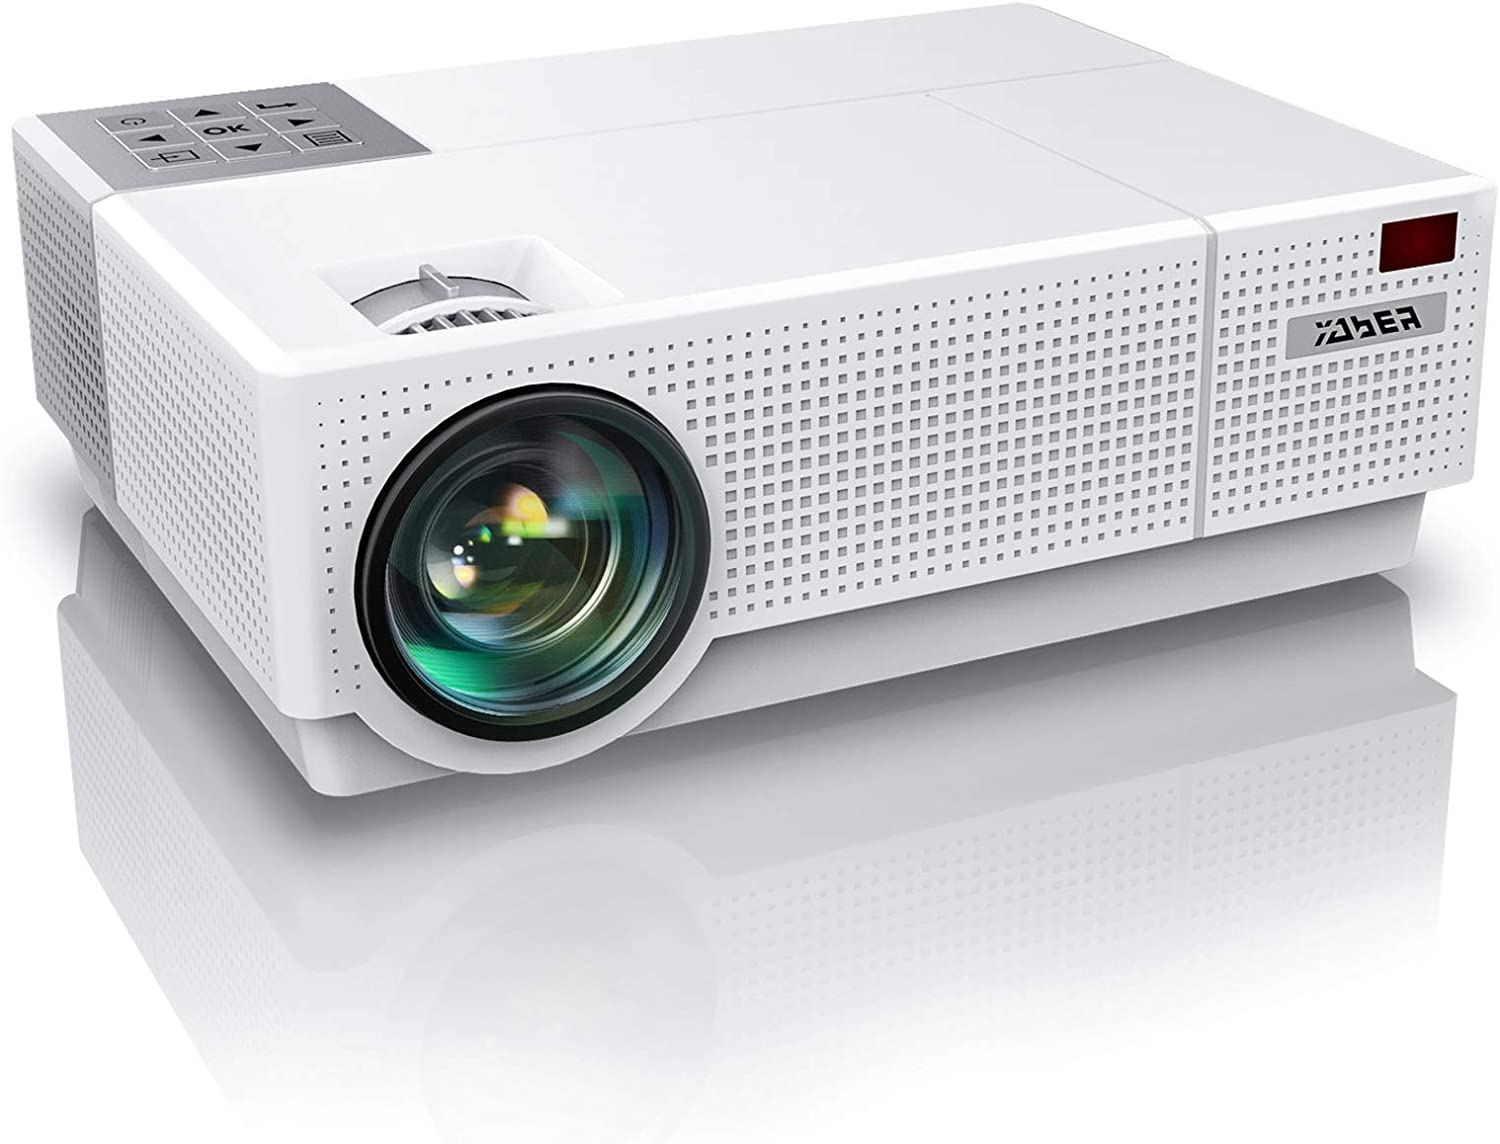 YABER Y31 8500L Native 1920x1080P Projector, 2021 Upgraded Full HD Video Projector, ±50° 4D Keystone Correction Support 4K, Home Theater Projector Compatible with Phone,PC,TV Box,PS5